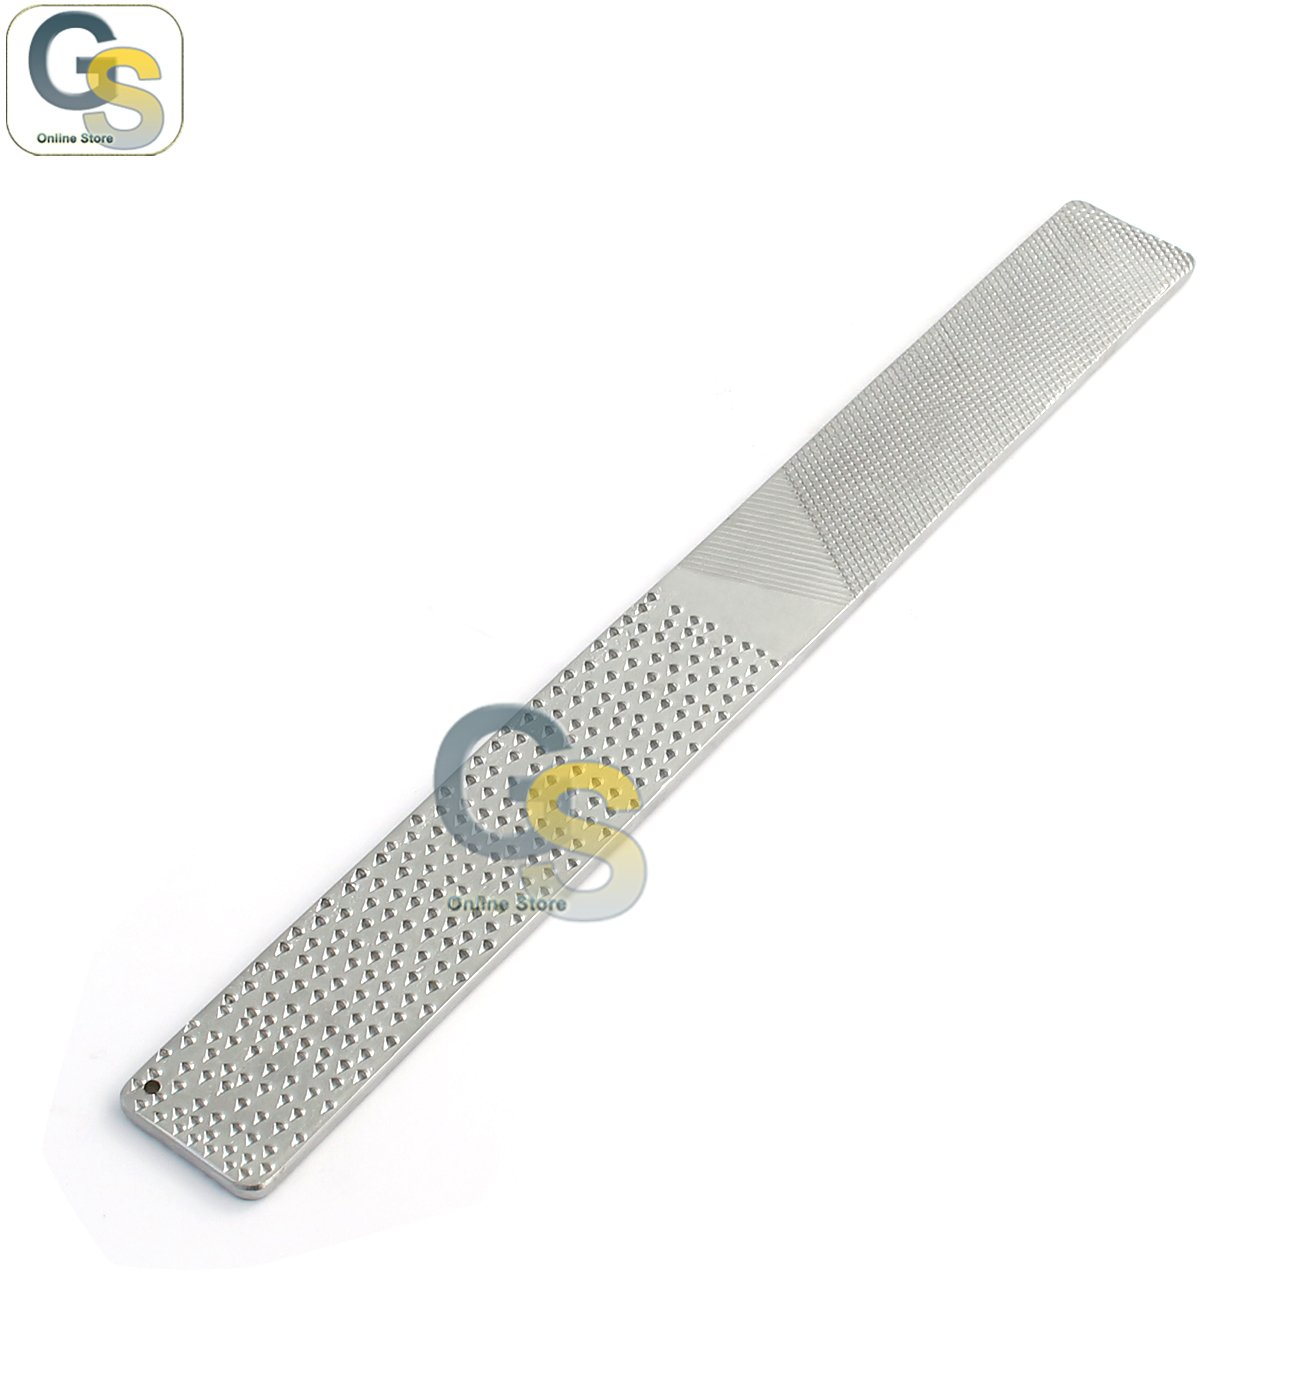 G.S HOOF RASP / FILE VETERINARY INSTRUMENTS